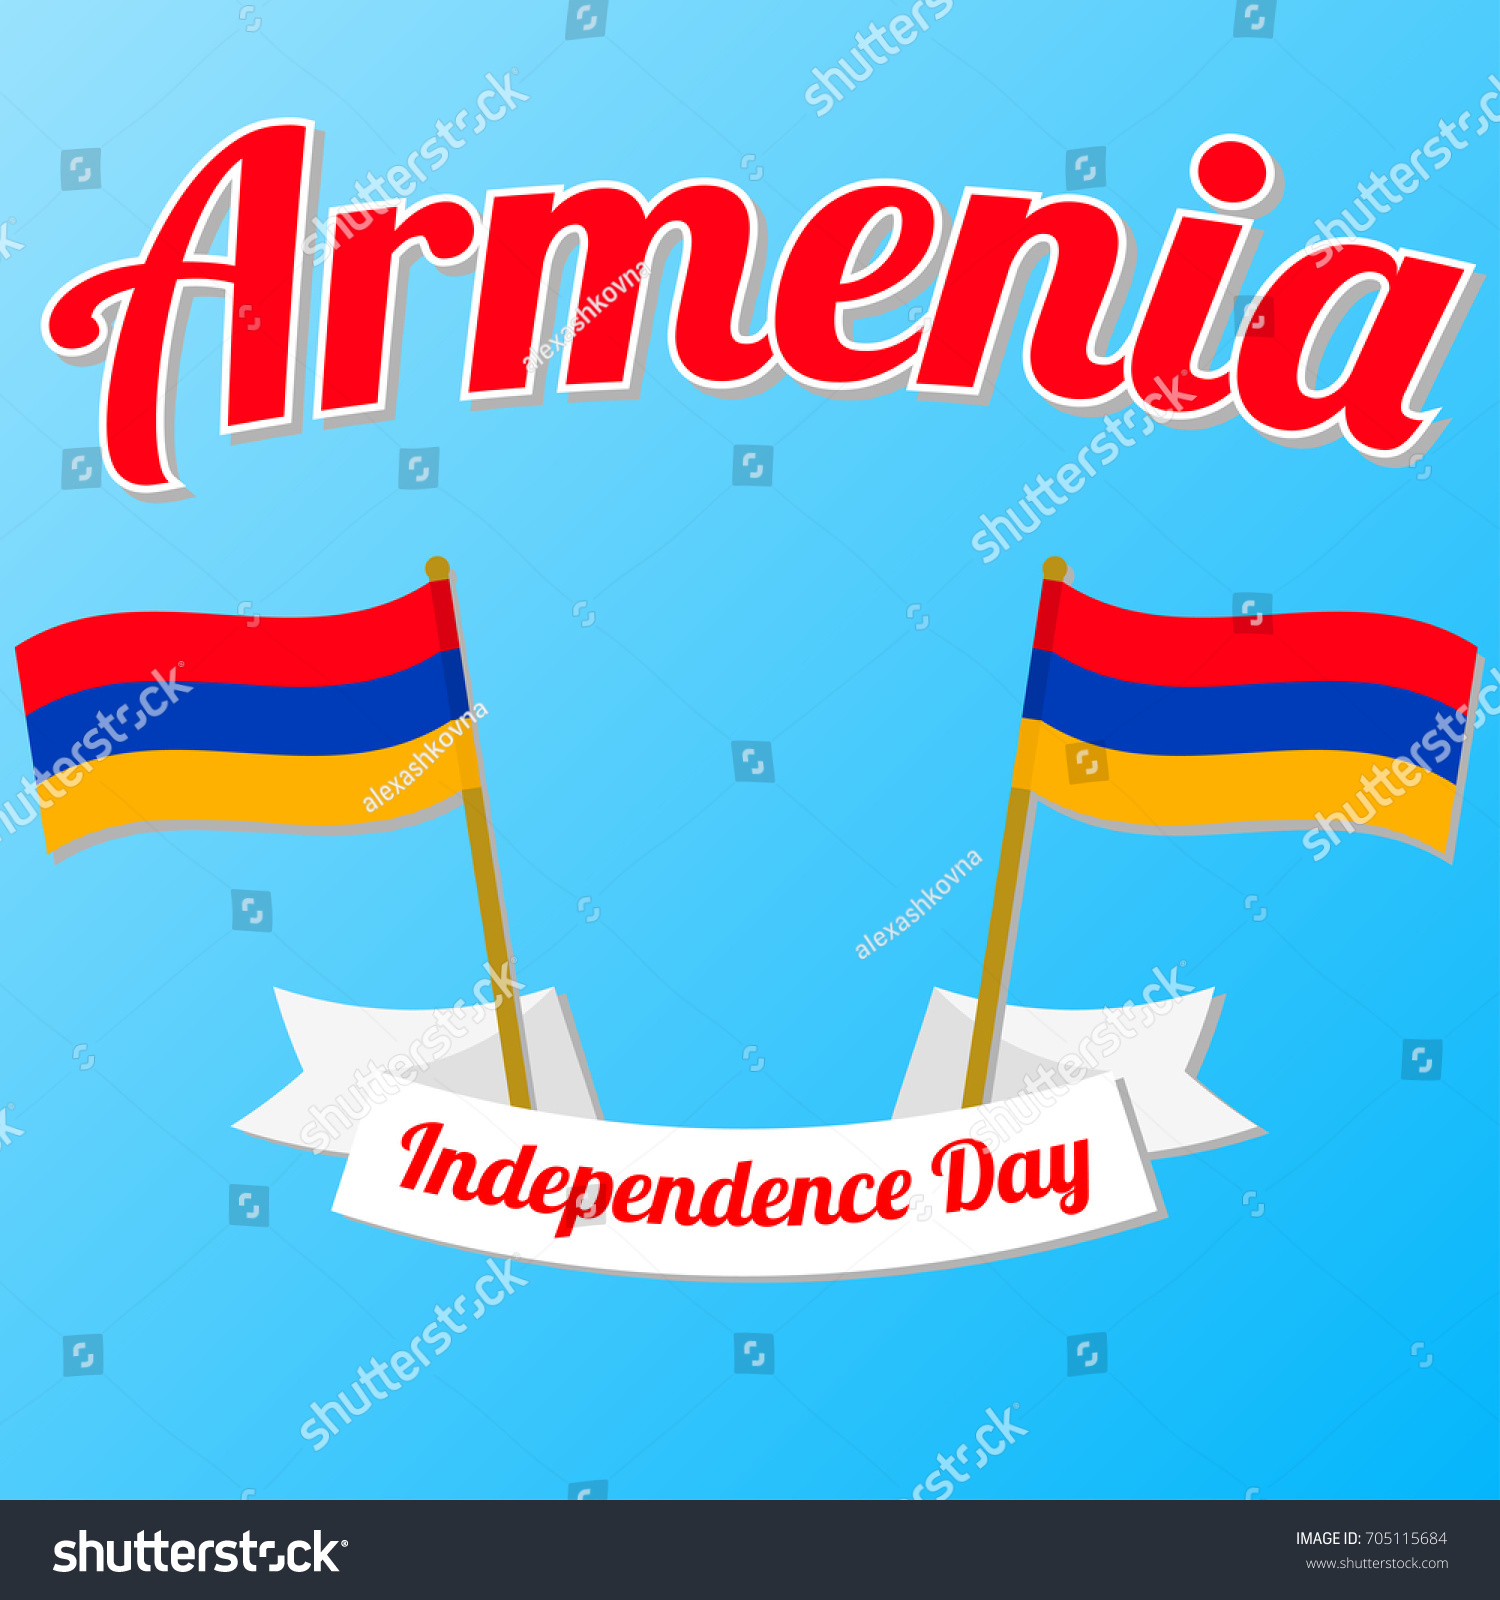 Independence Day Armenia Vector Illustration Ribbon Stock Vector